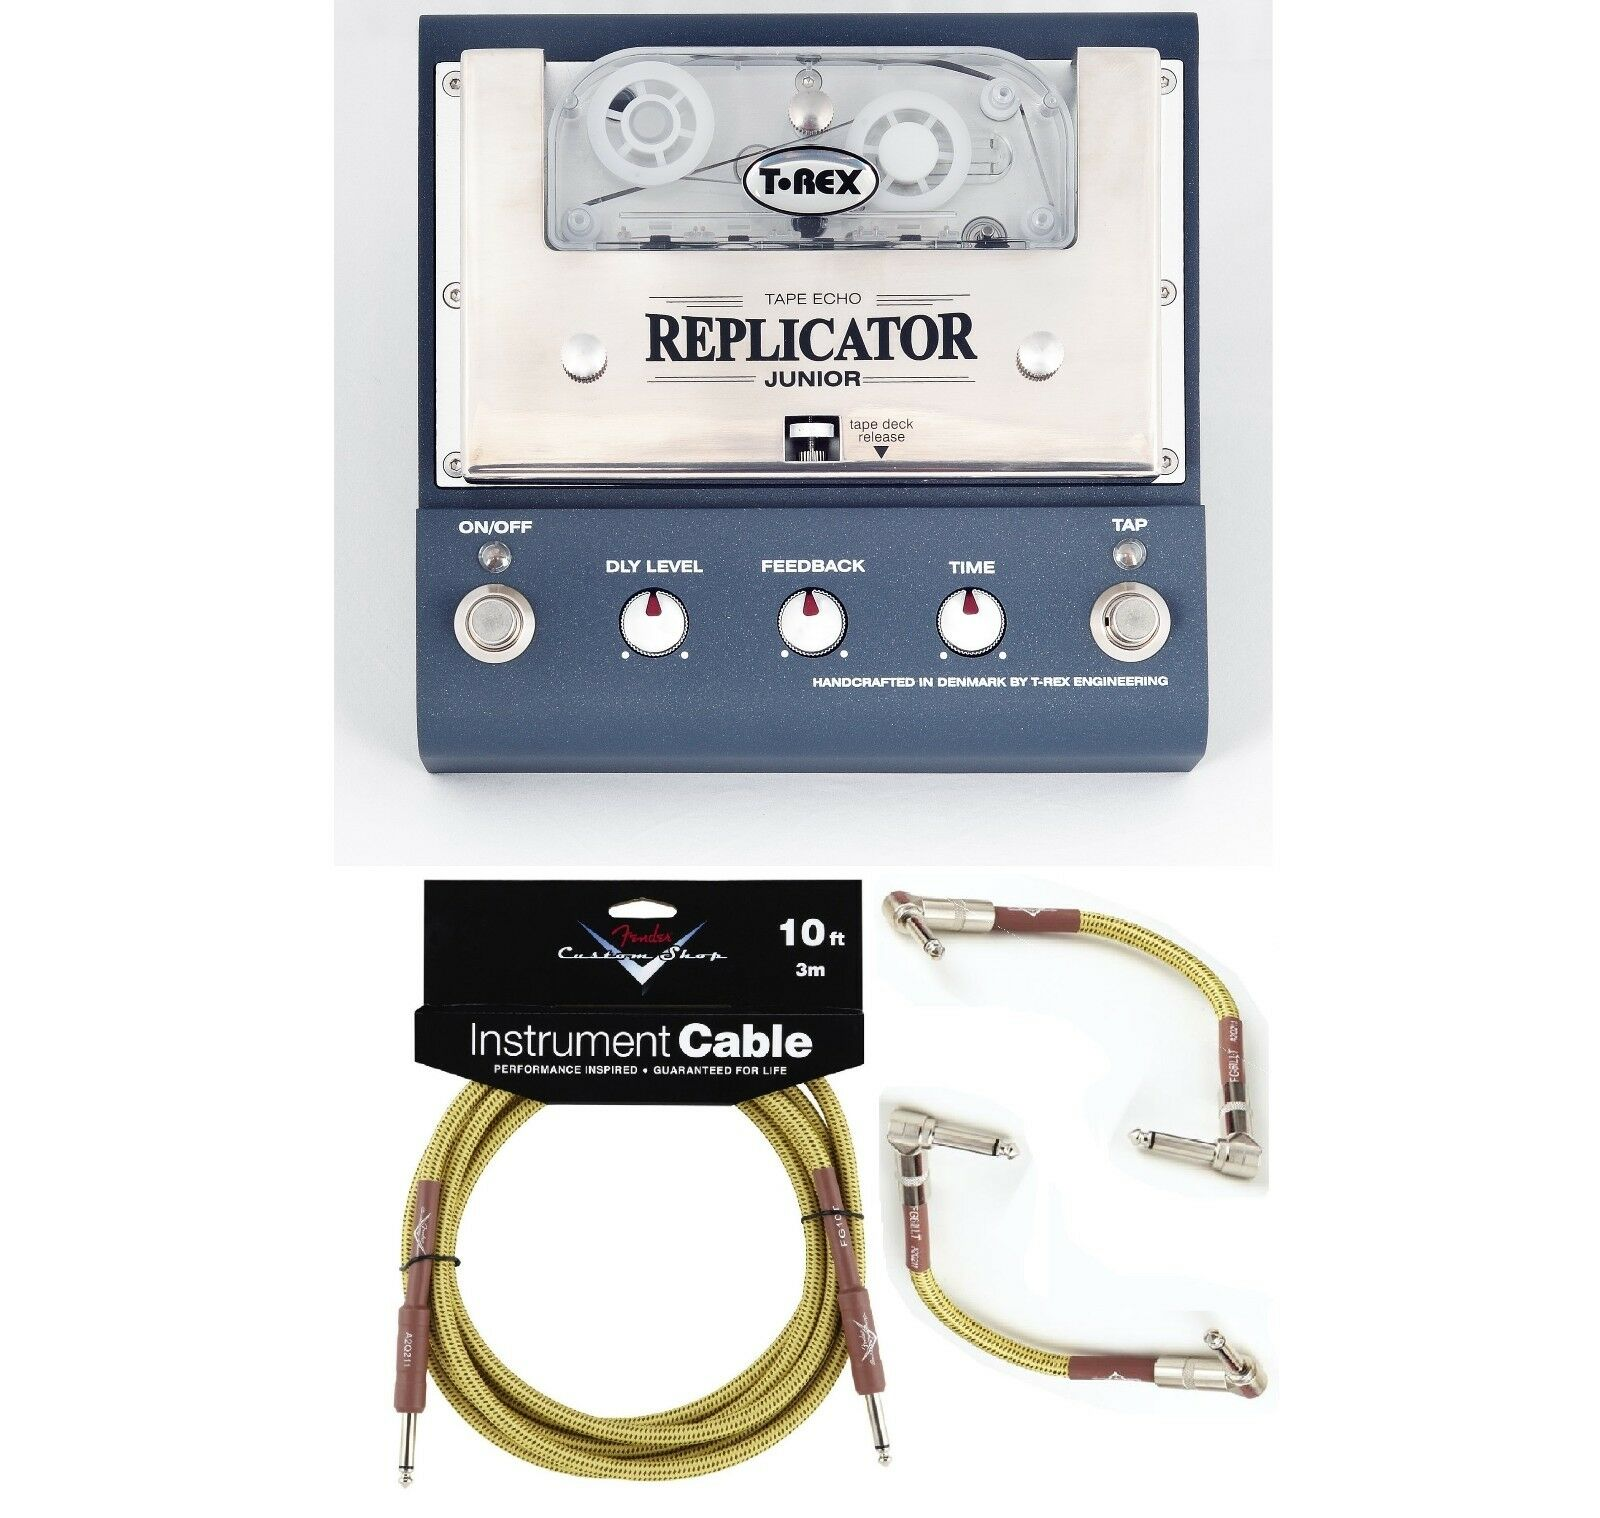 New T-Rex Replicator Junior Tape Echo Guitar Effects Pedal